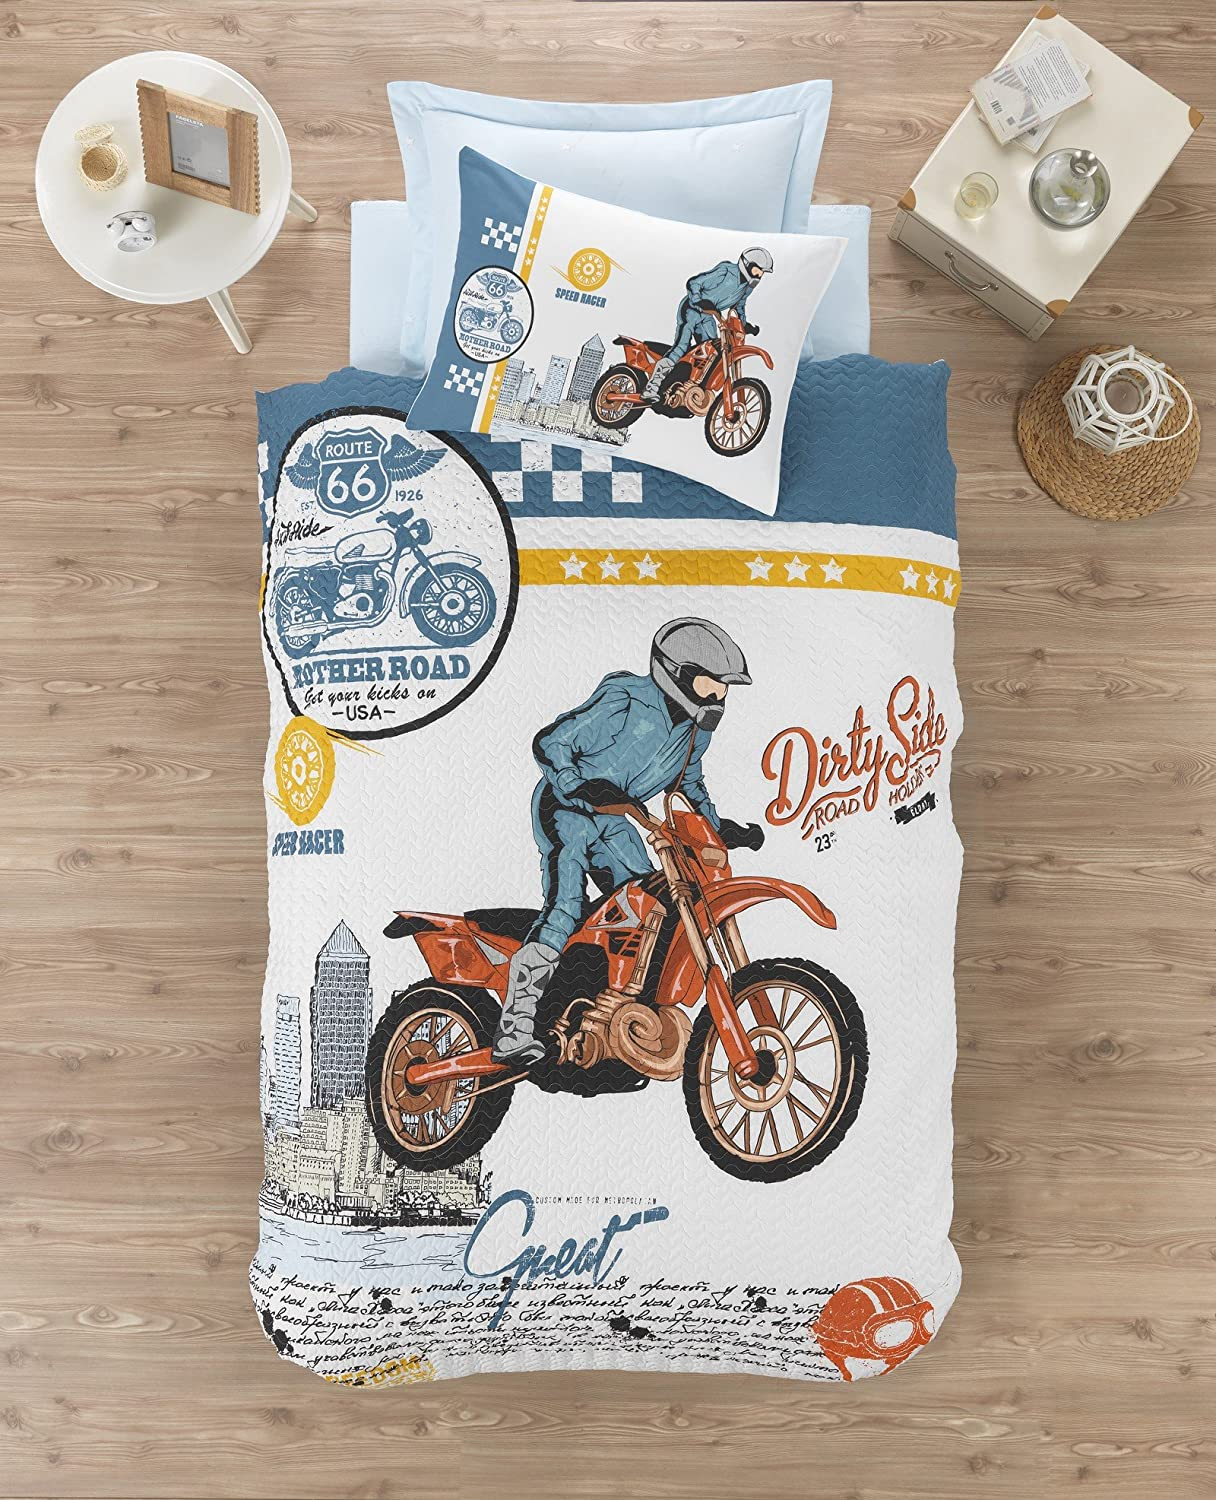 100% Cotton Multifunctional 4 Season Motorcycle Bedding, Route 66 Motorcycle Themed Single/Twin Size Quilted Bedspread/Duvet Cover Set,